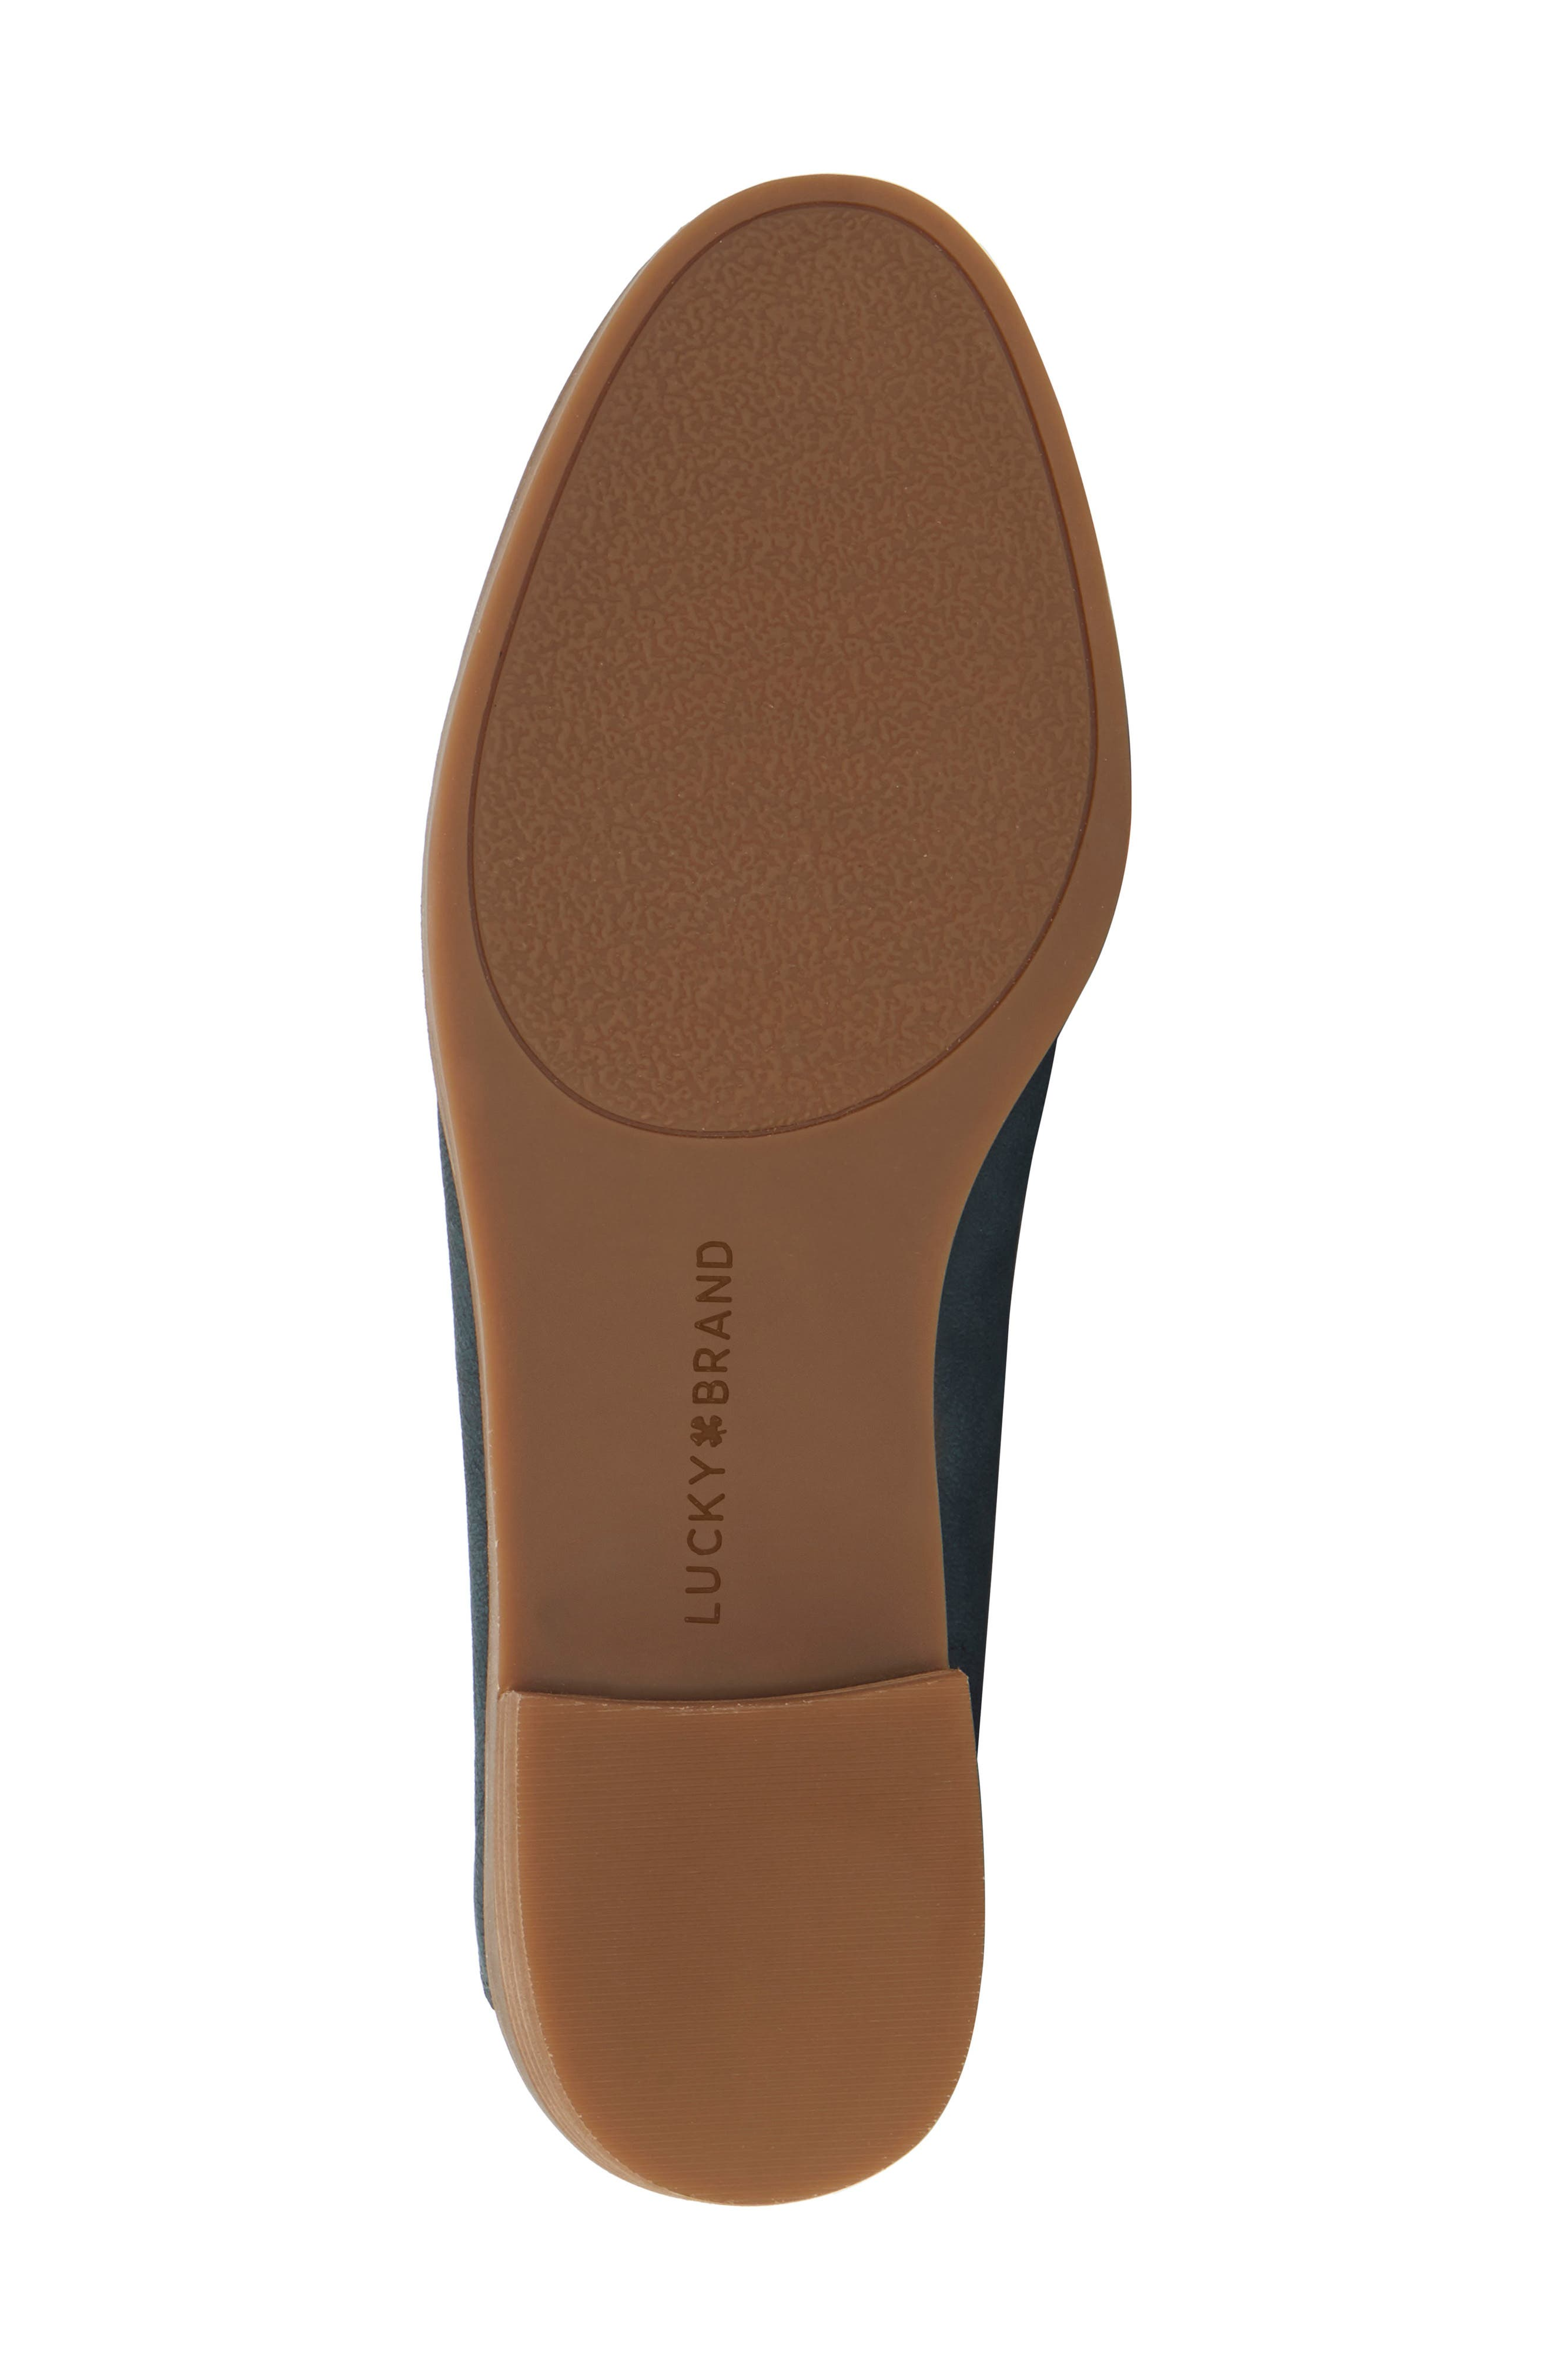 LUCKY BRAND, Cahill Flat, Alternate thumbnail 7, color, KELP LEATHER